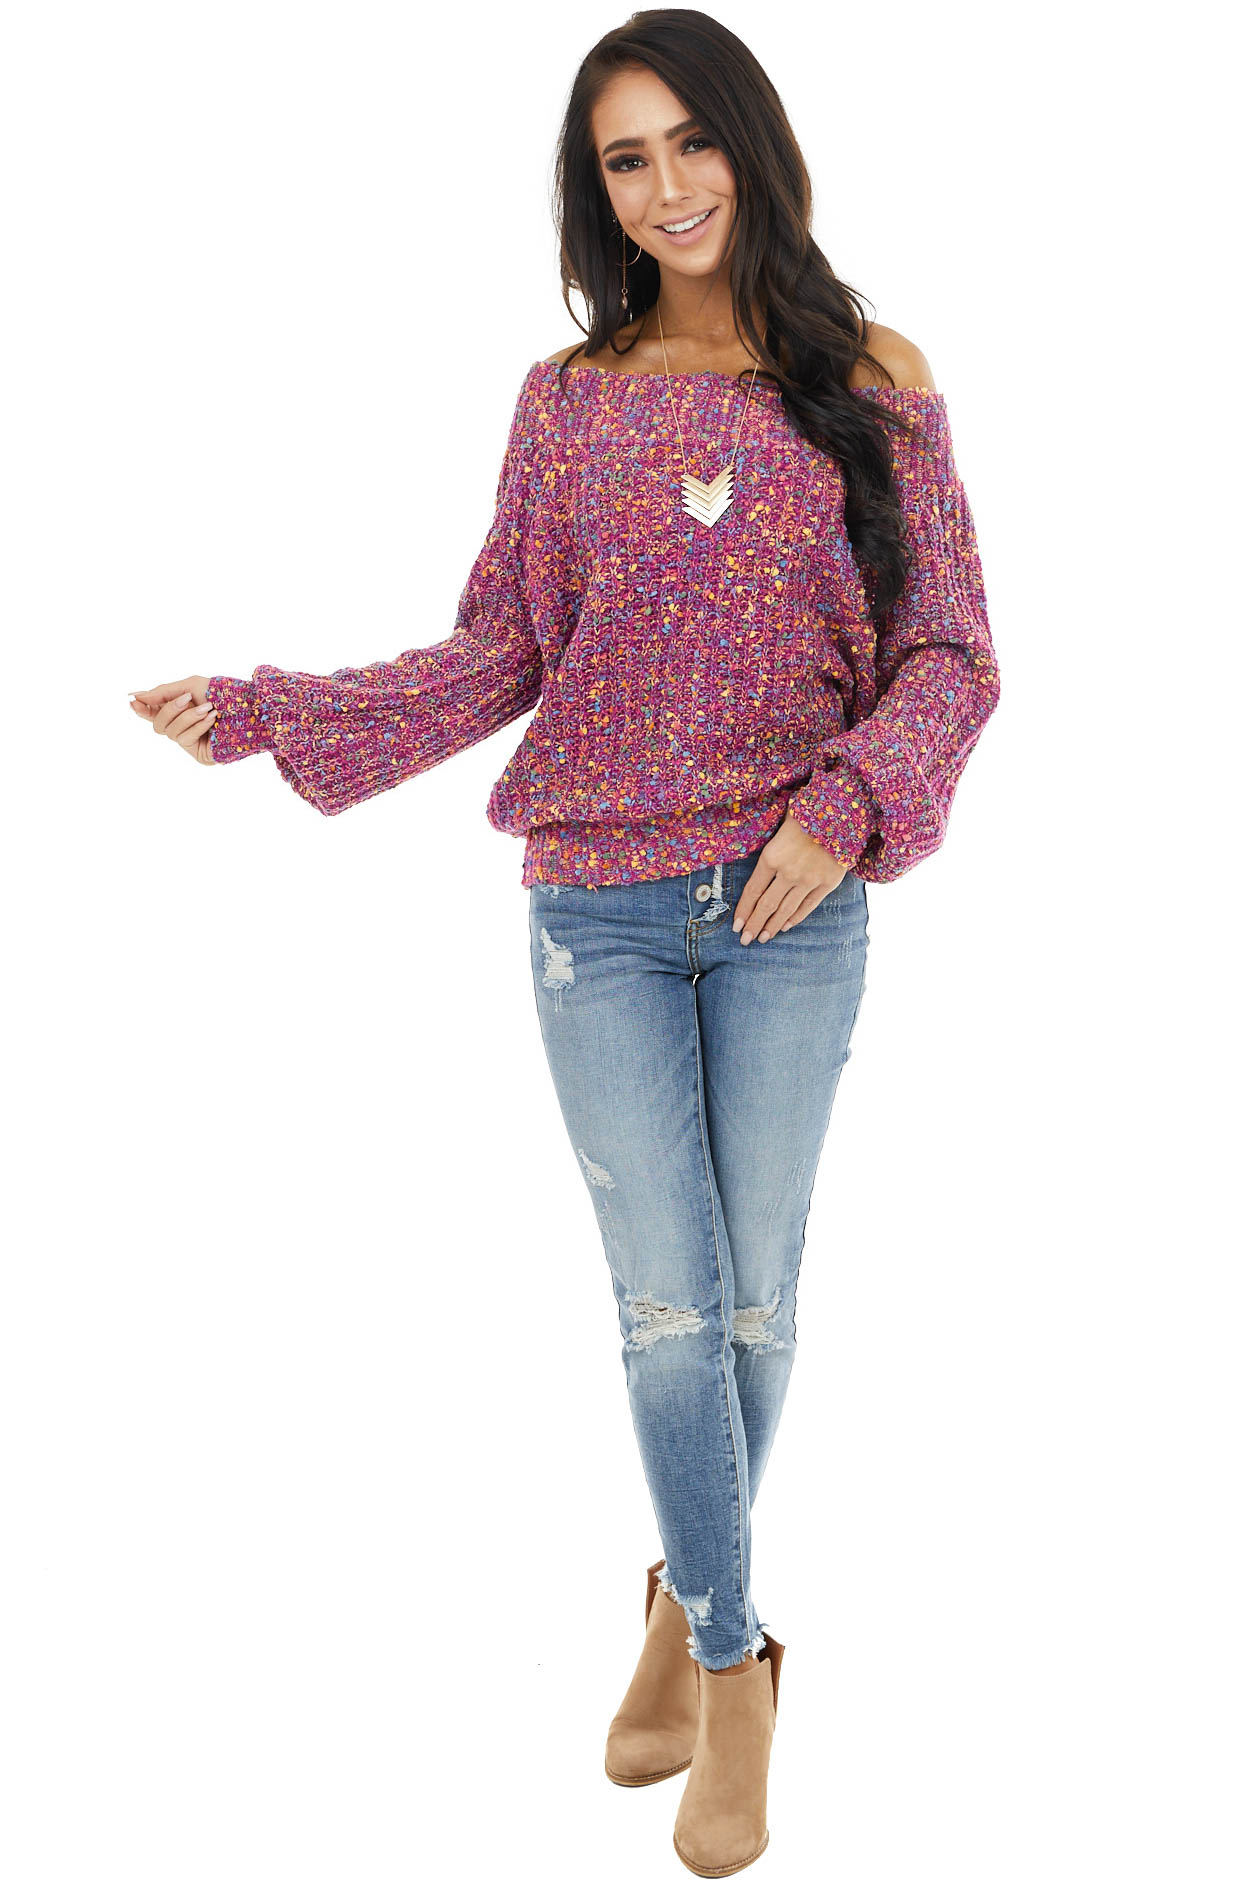 Plum Confetti Knit Off Shoulder Sweater with Puff Sleeves